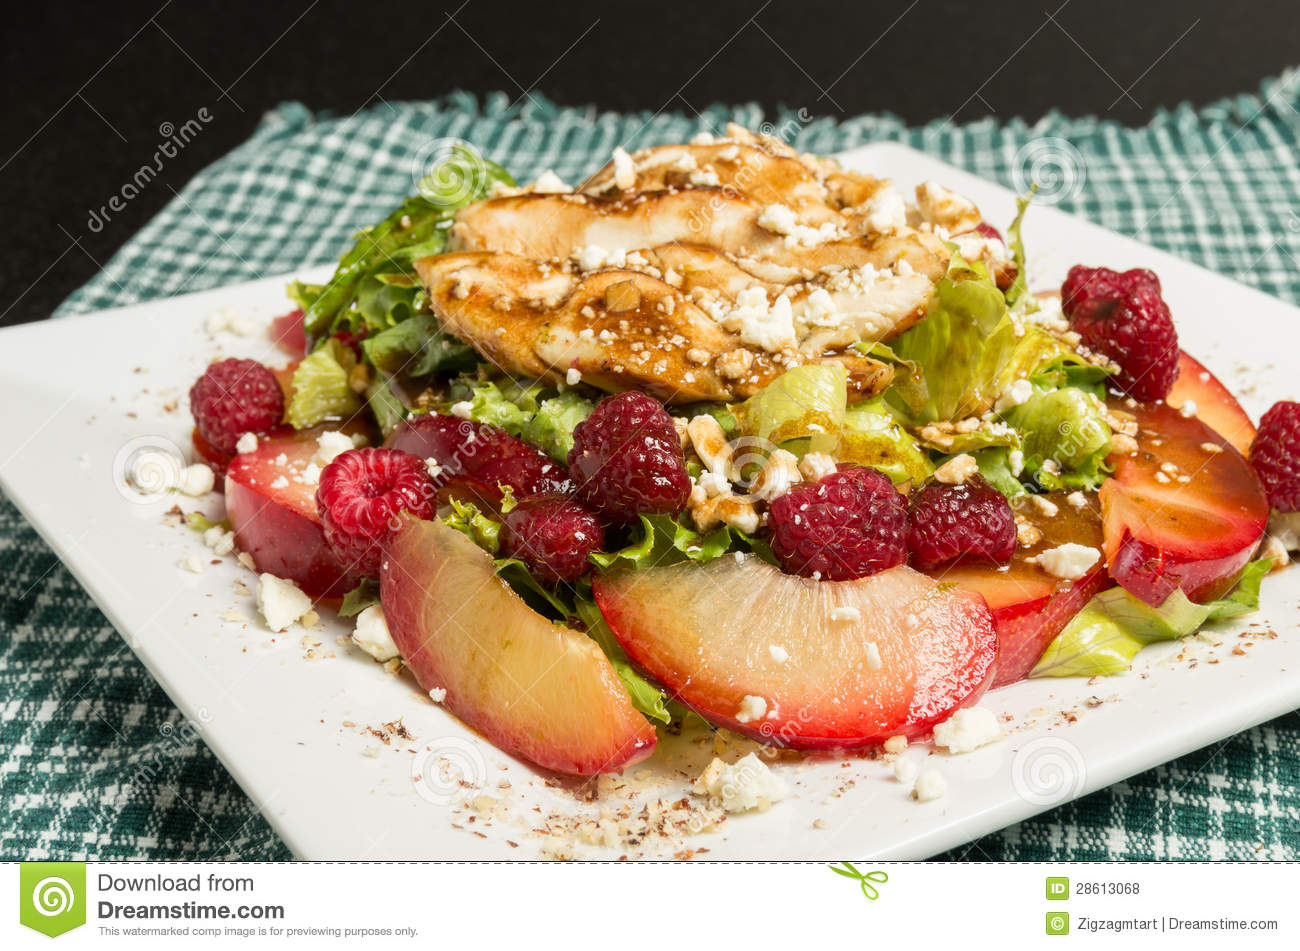 Royalty Free Stock Photos: Chicken salad with plums and raspberries